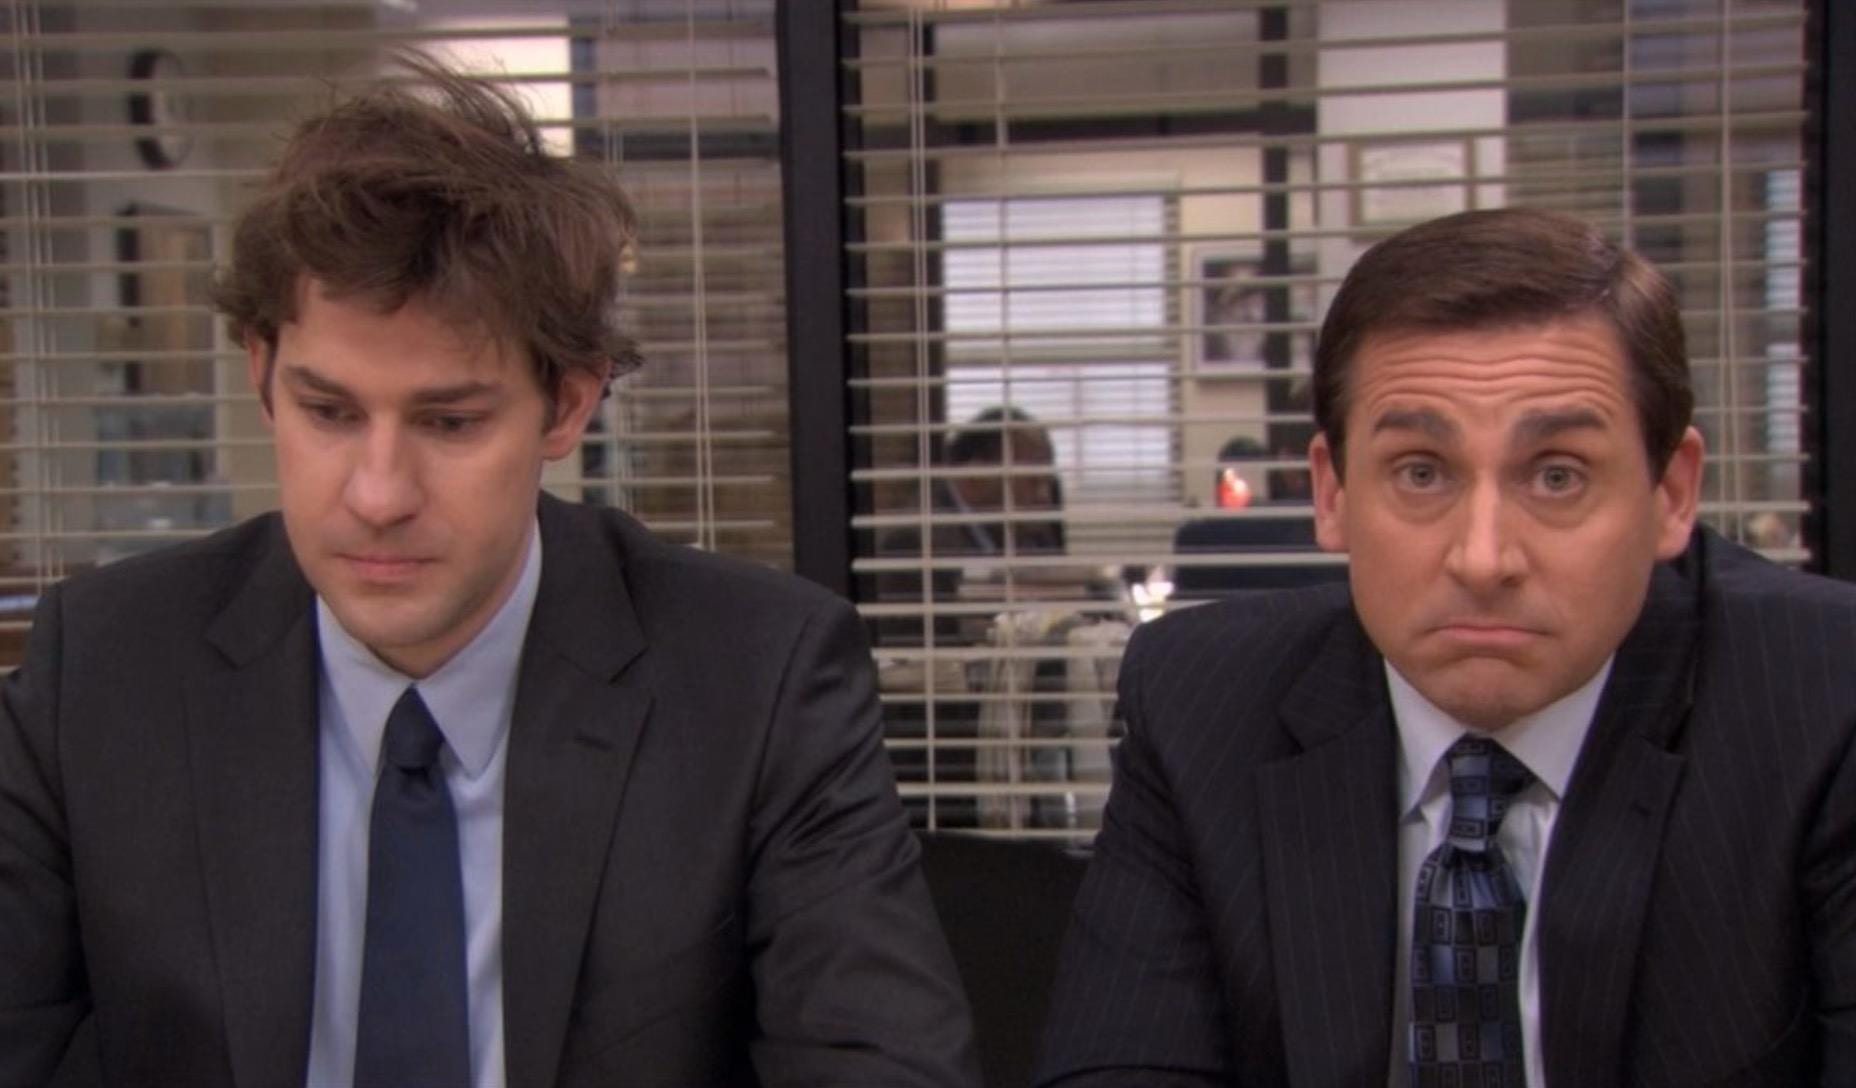 The Office: per l'autore un remake sarebbe difficile, ma non impossibile